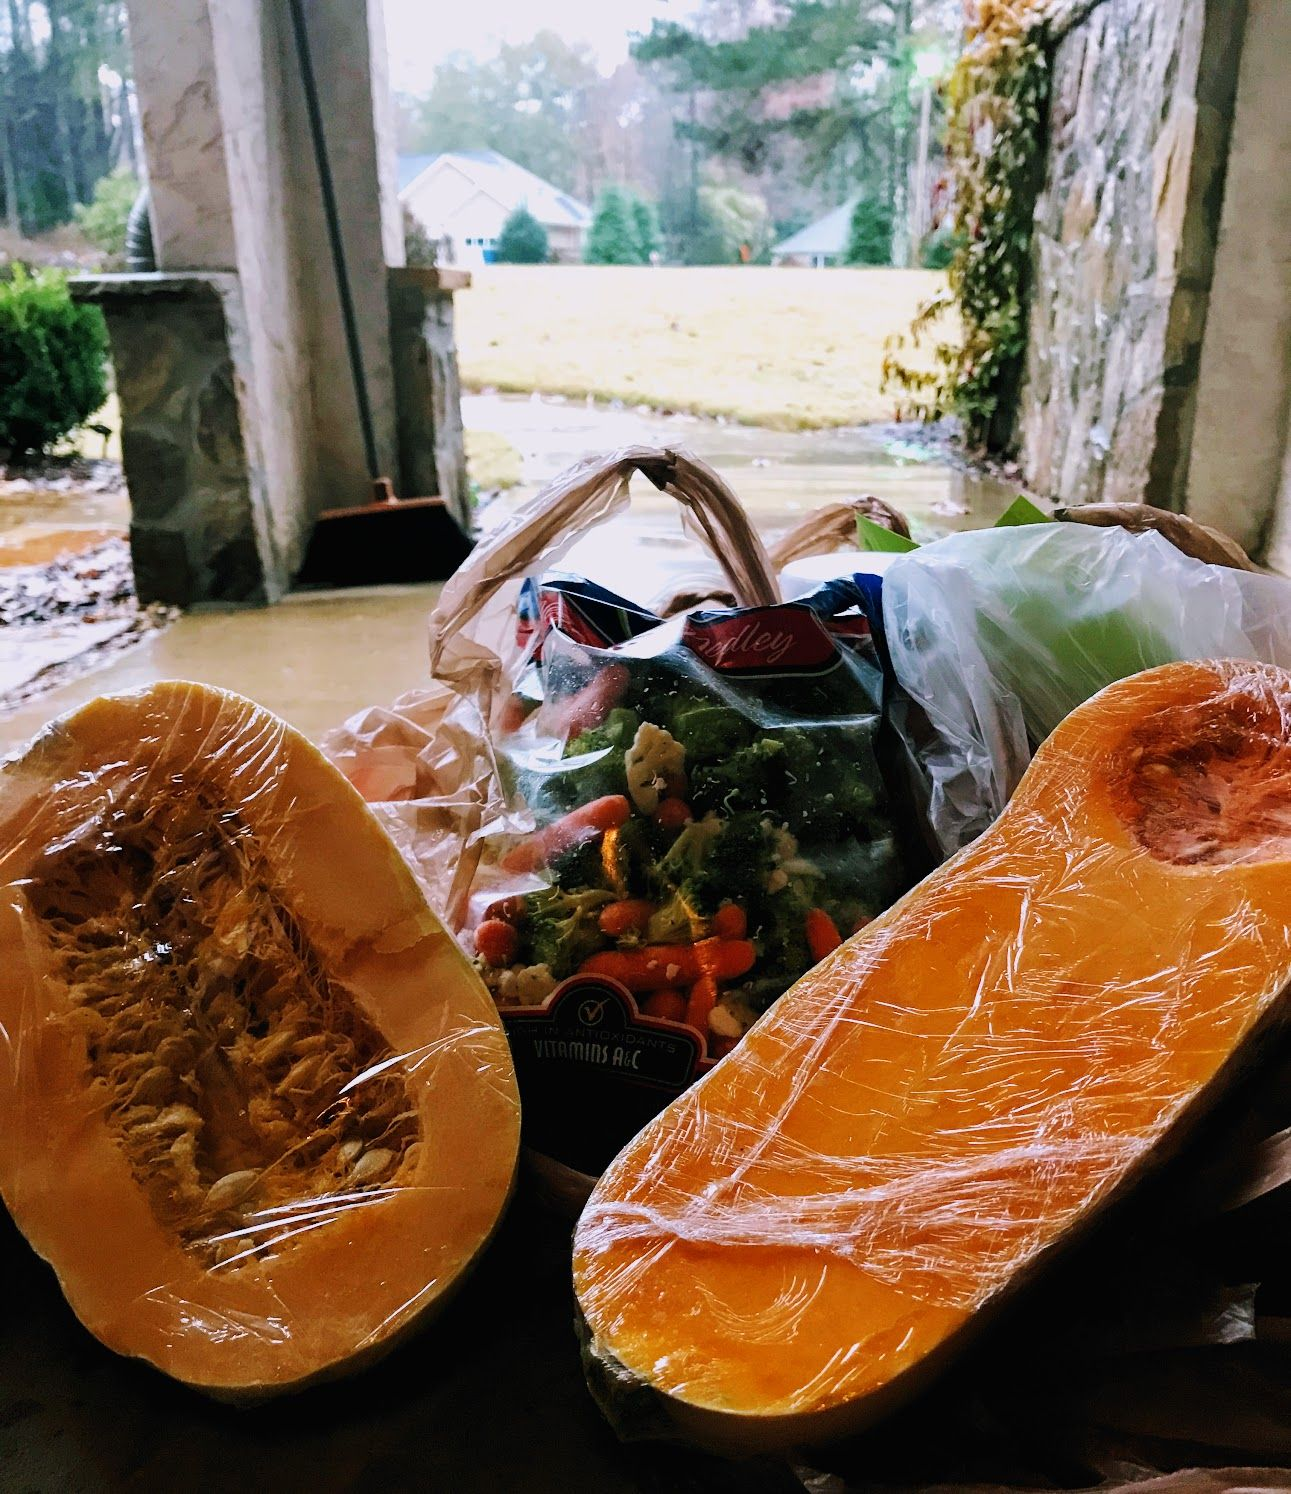 Home delivery of your groceries makes grocery shopping a